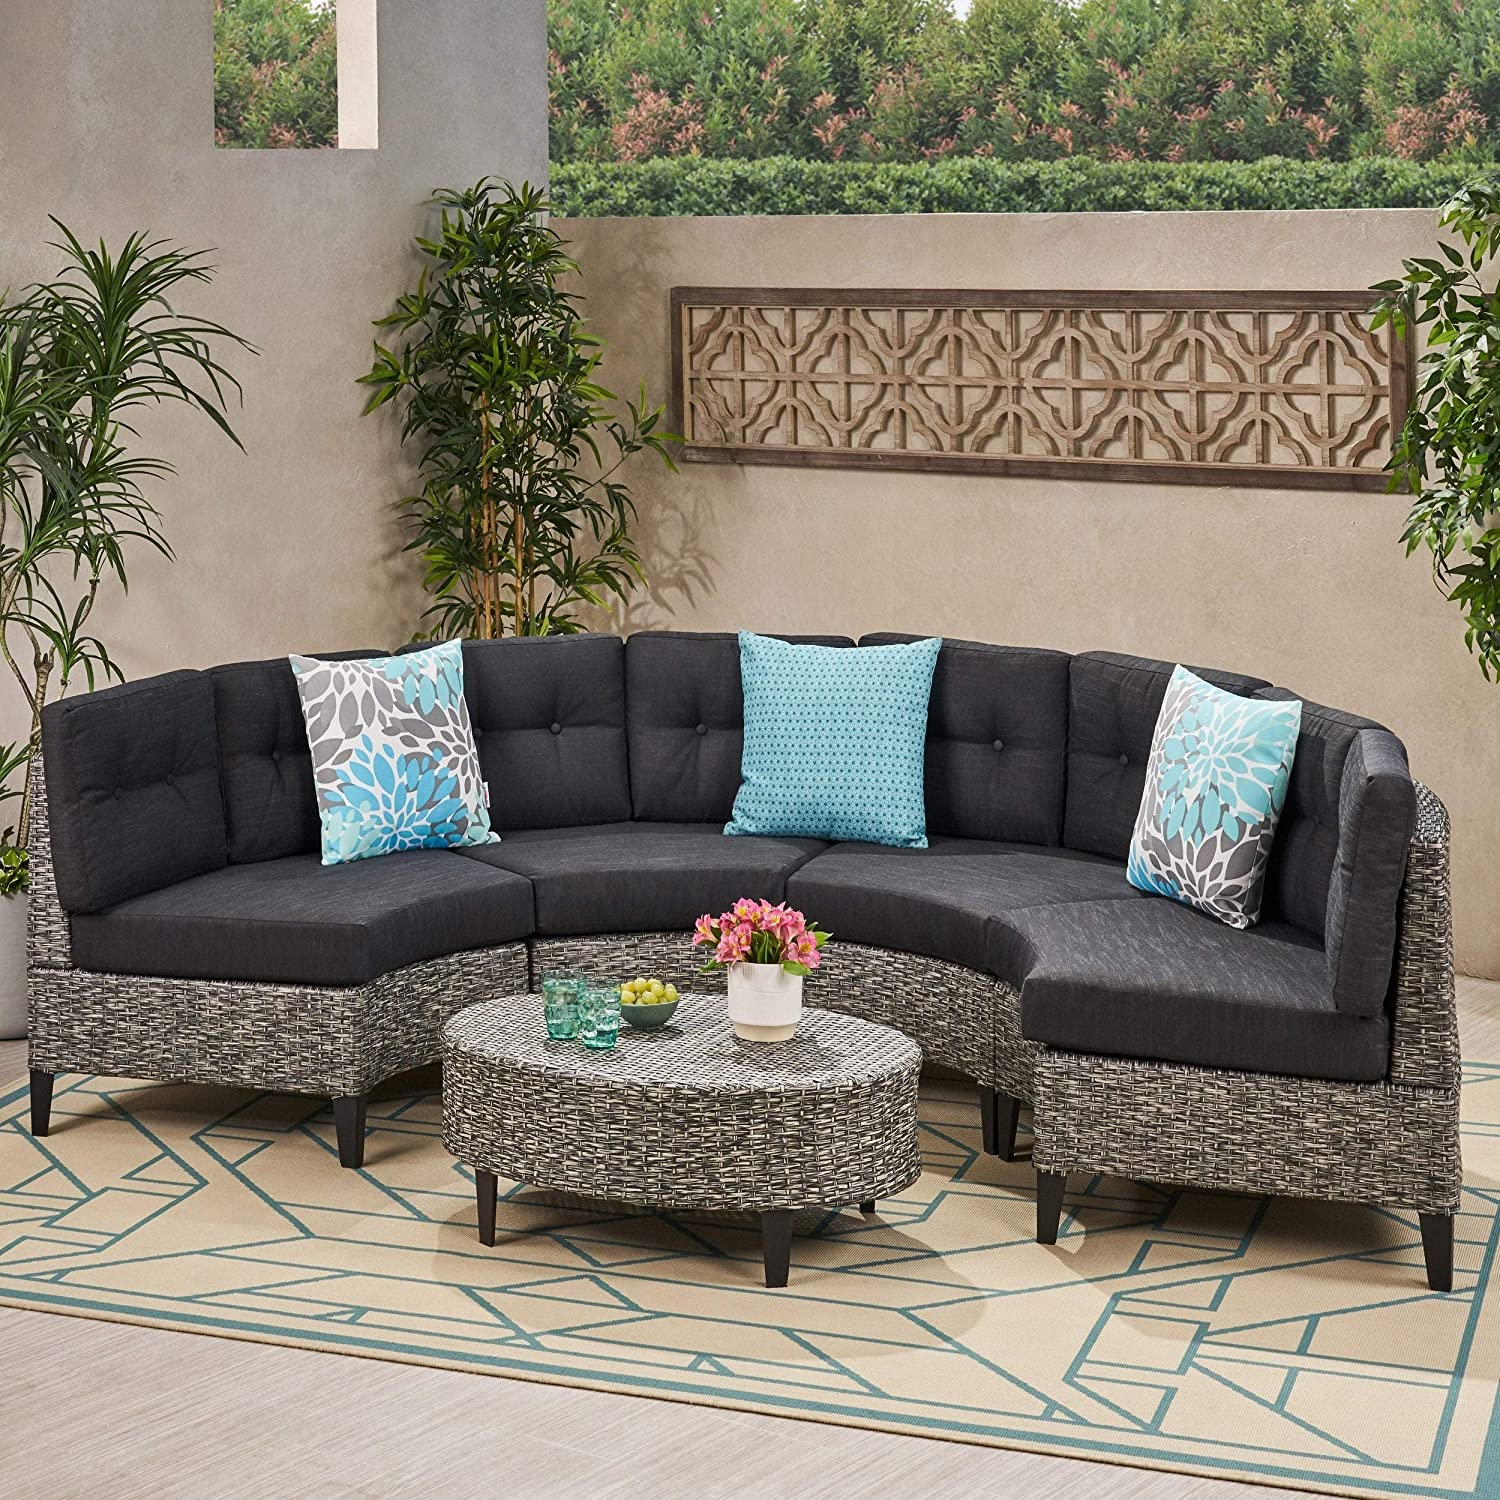 Outdoor 5-Piece Wicker Sofa Opening large release sale Set Grey Modern Cushions Max 73% OFF Black with